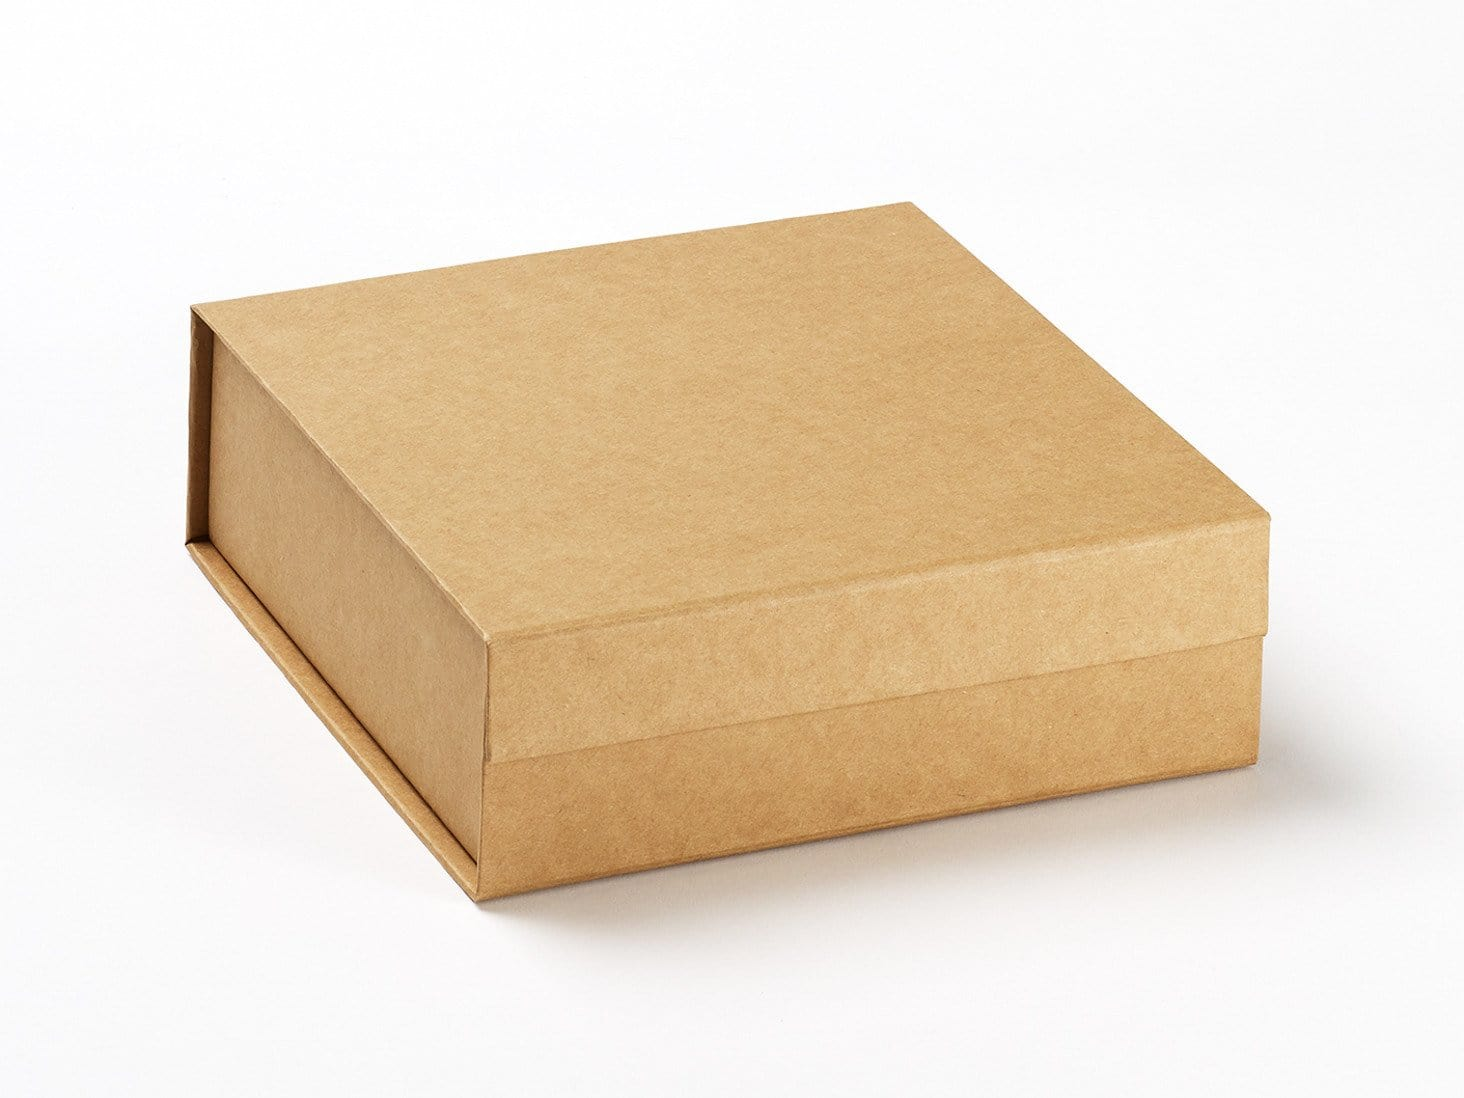 Natural Kraft Medium Folding Gift Box with magnetic closure from Foldabox